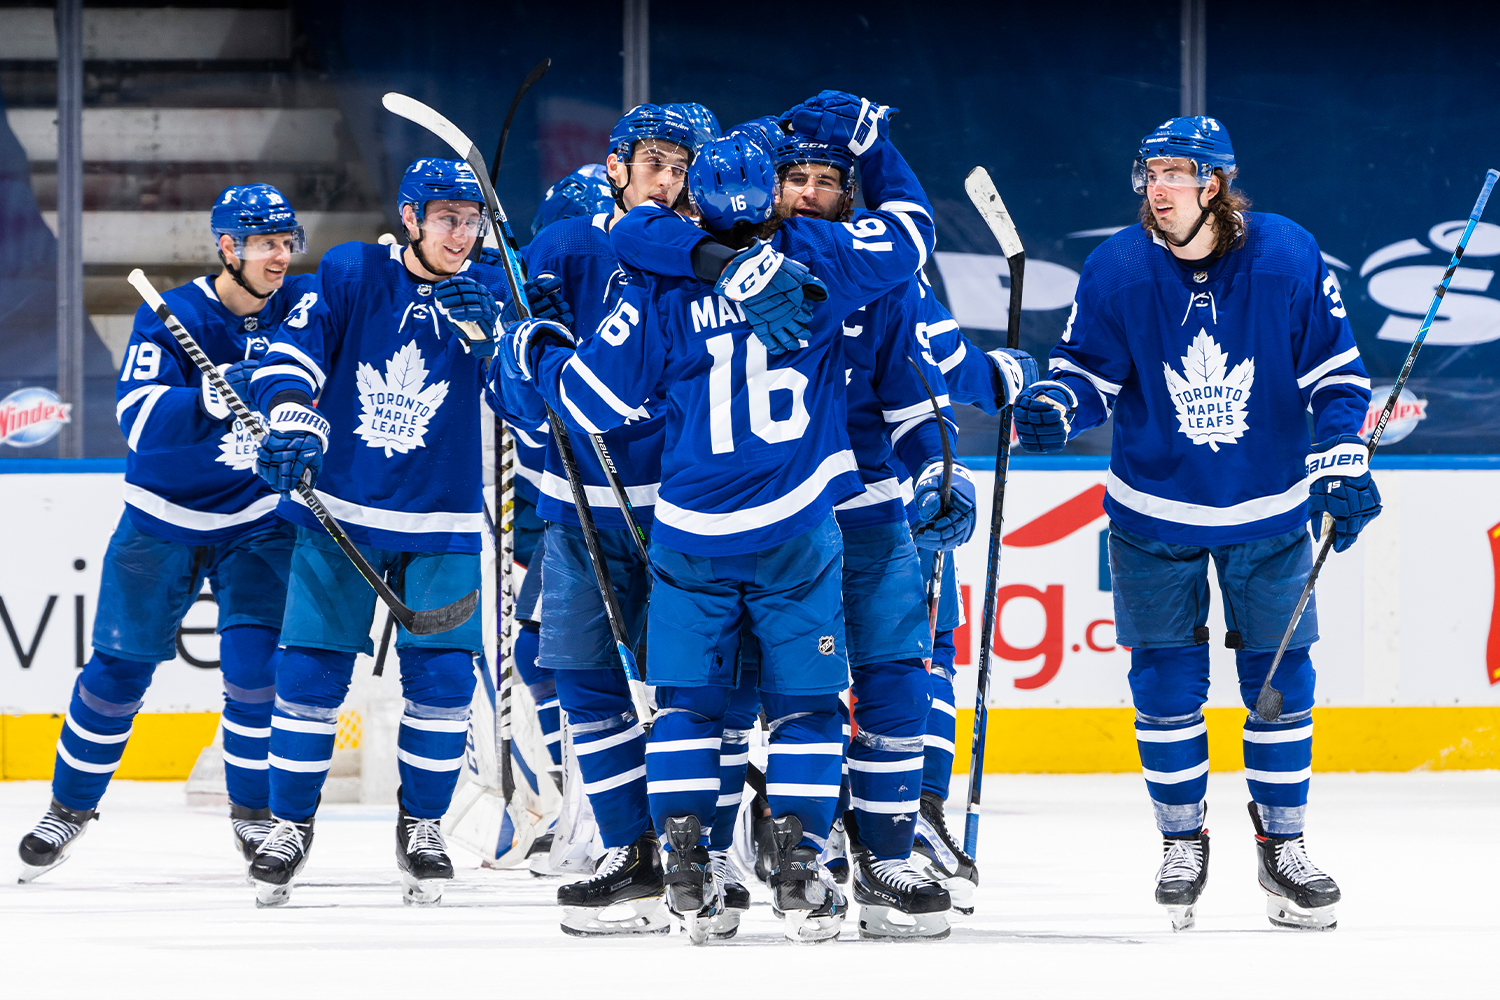 Mitchell Marner #16 and John Tavares #91 of the Toronto Maple Leafs hug after their team defeated the Vancouver Canucks at the Scotiabank Arena on April 29, 2021